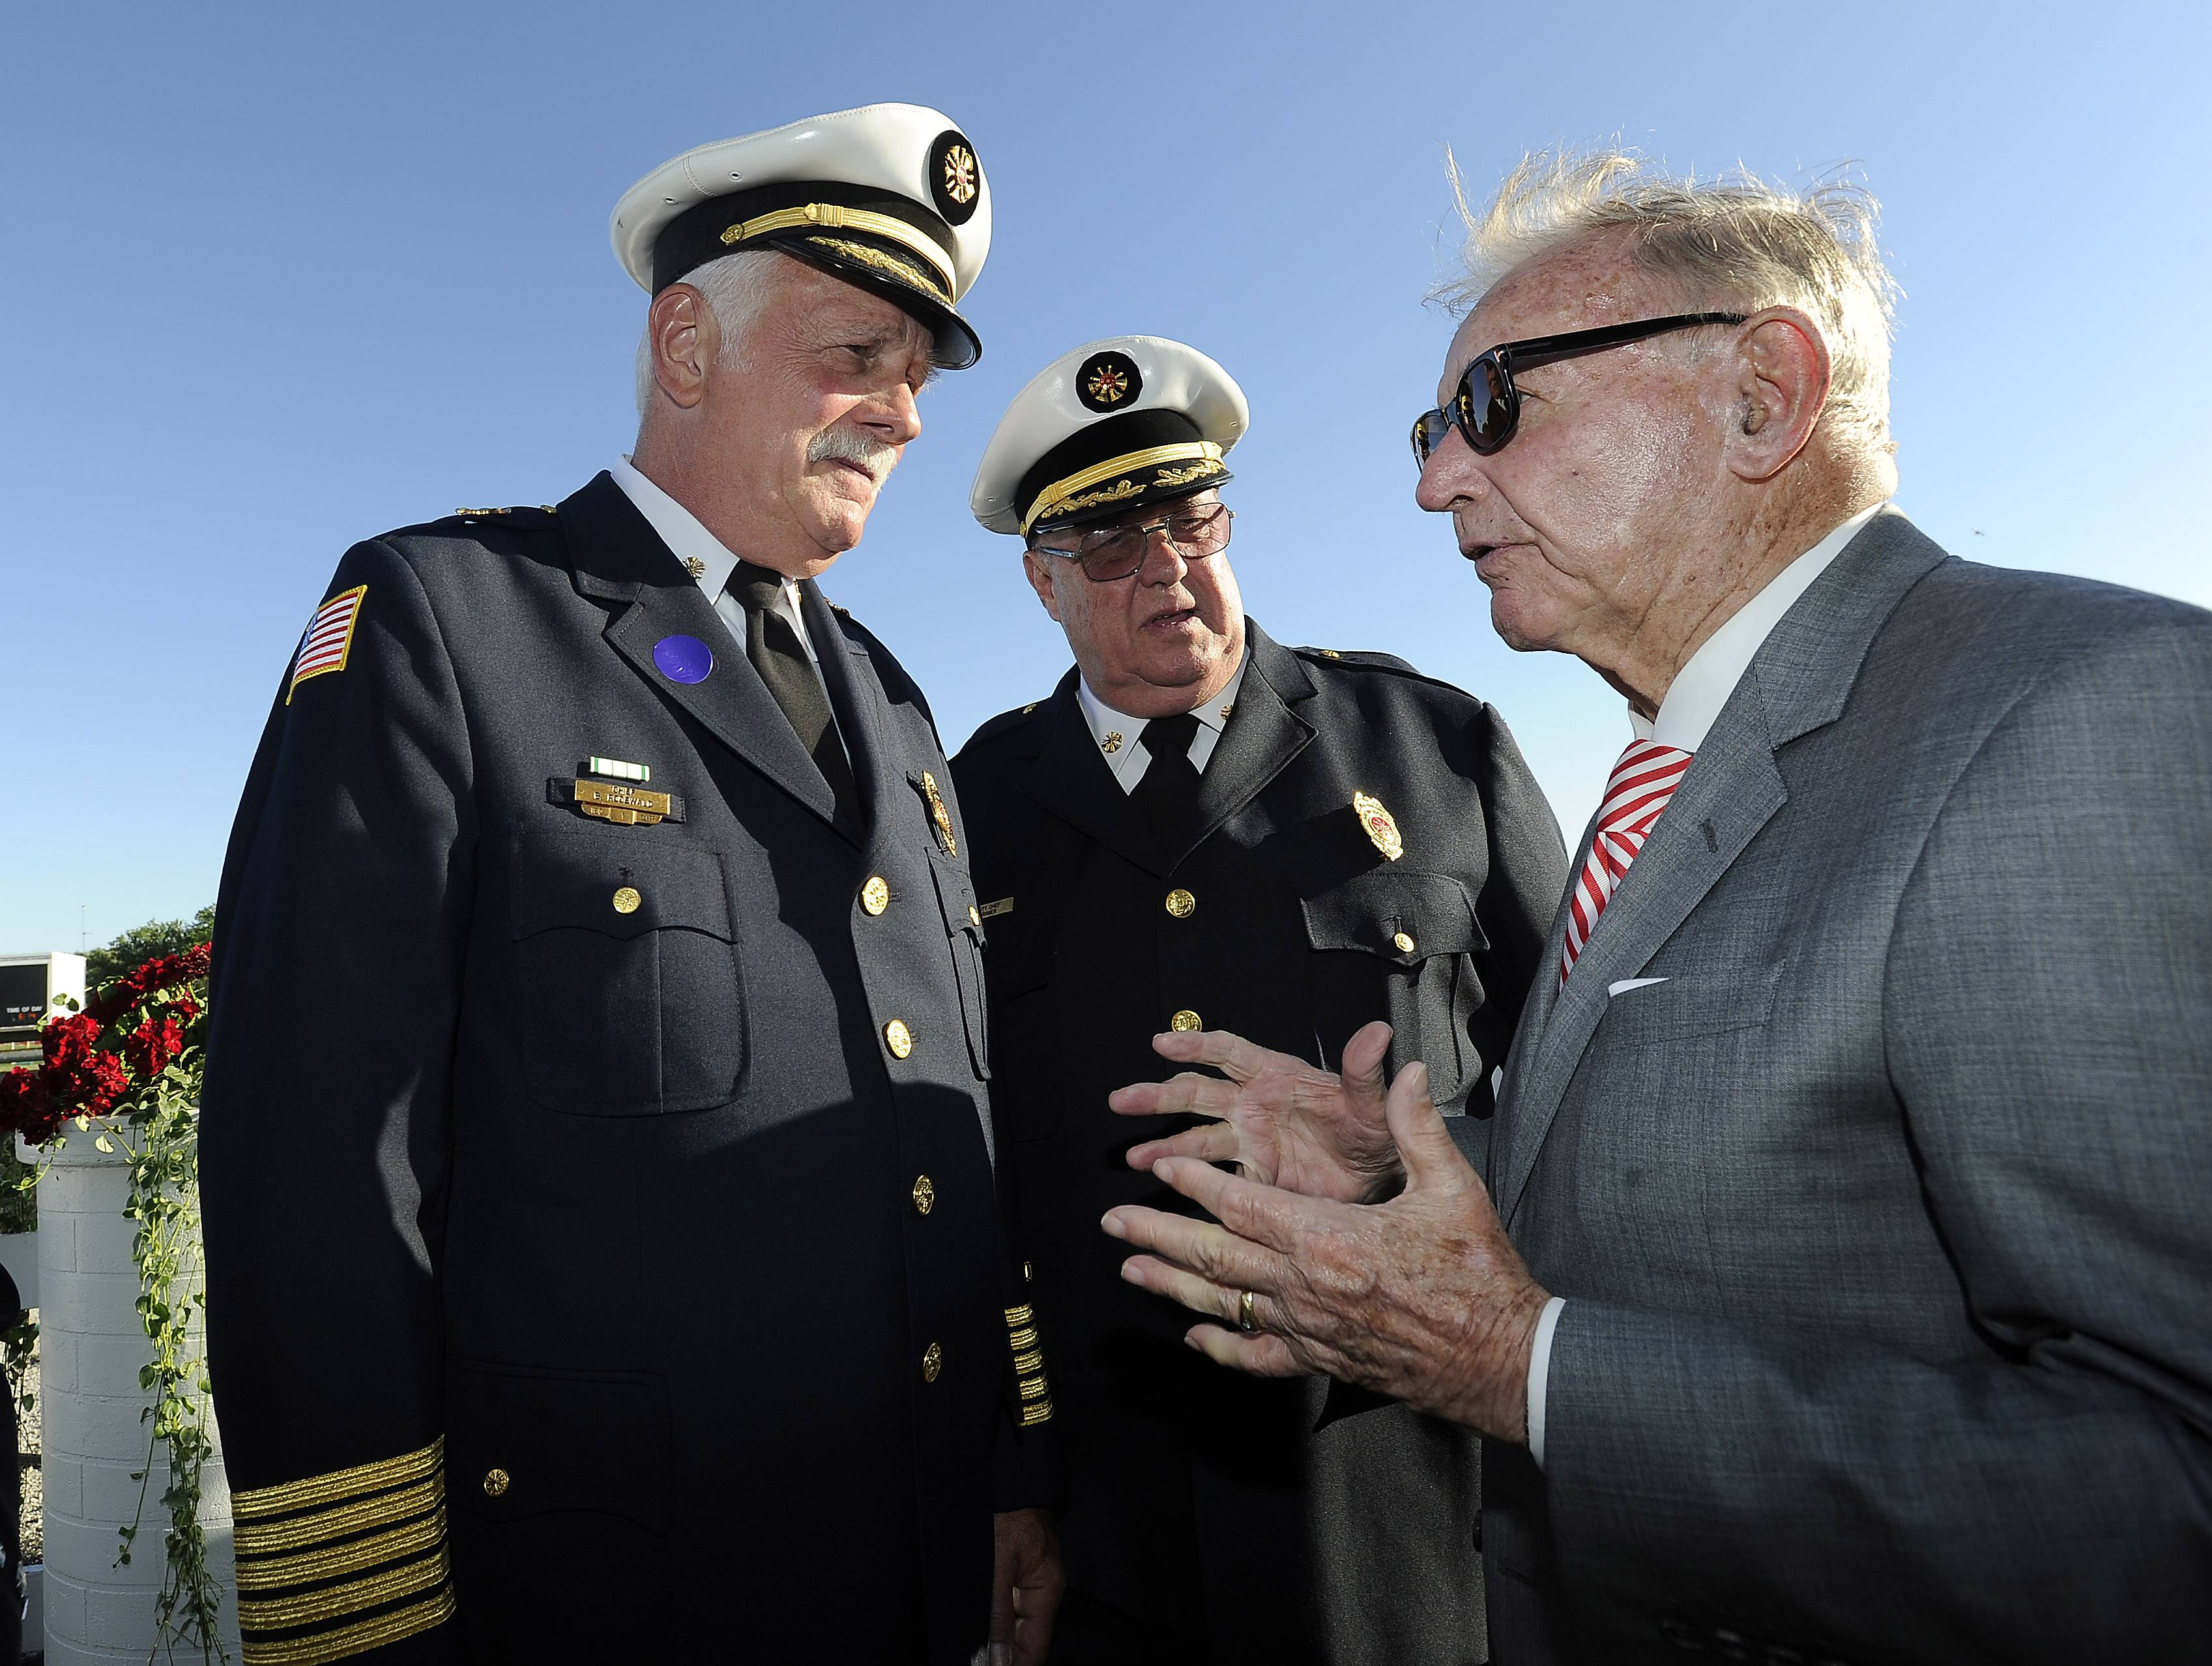 Arlington Park owner Dick Duchossois talks with former Arlington Heights Fire Chief Bruce Rodewald, left, and Assistant Emergency Management Coordinator Charles Kramer on Friday. Duchossois thanked the first responders for their gallant efforts battling the fire at the track 30 years.